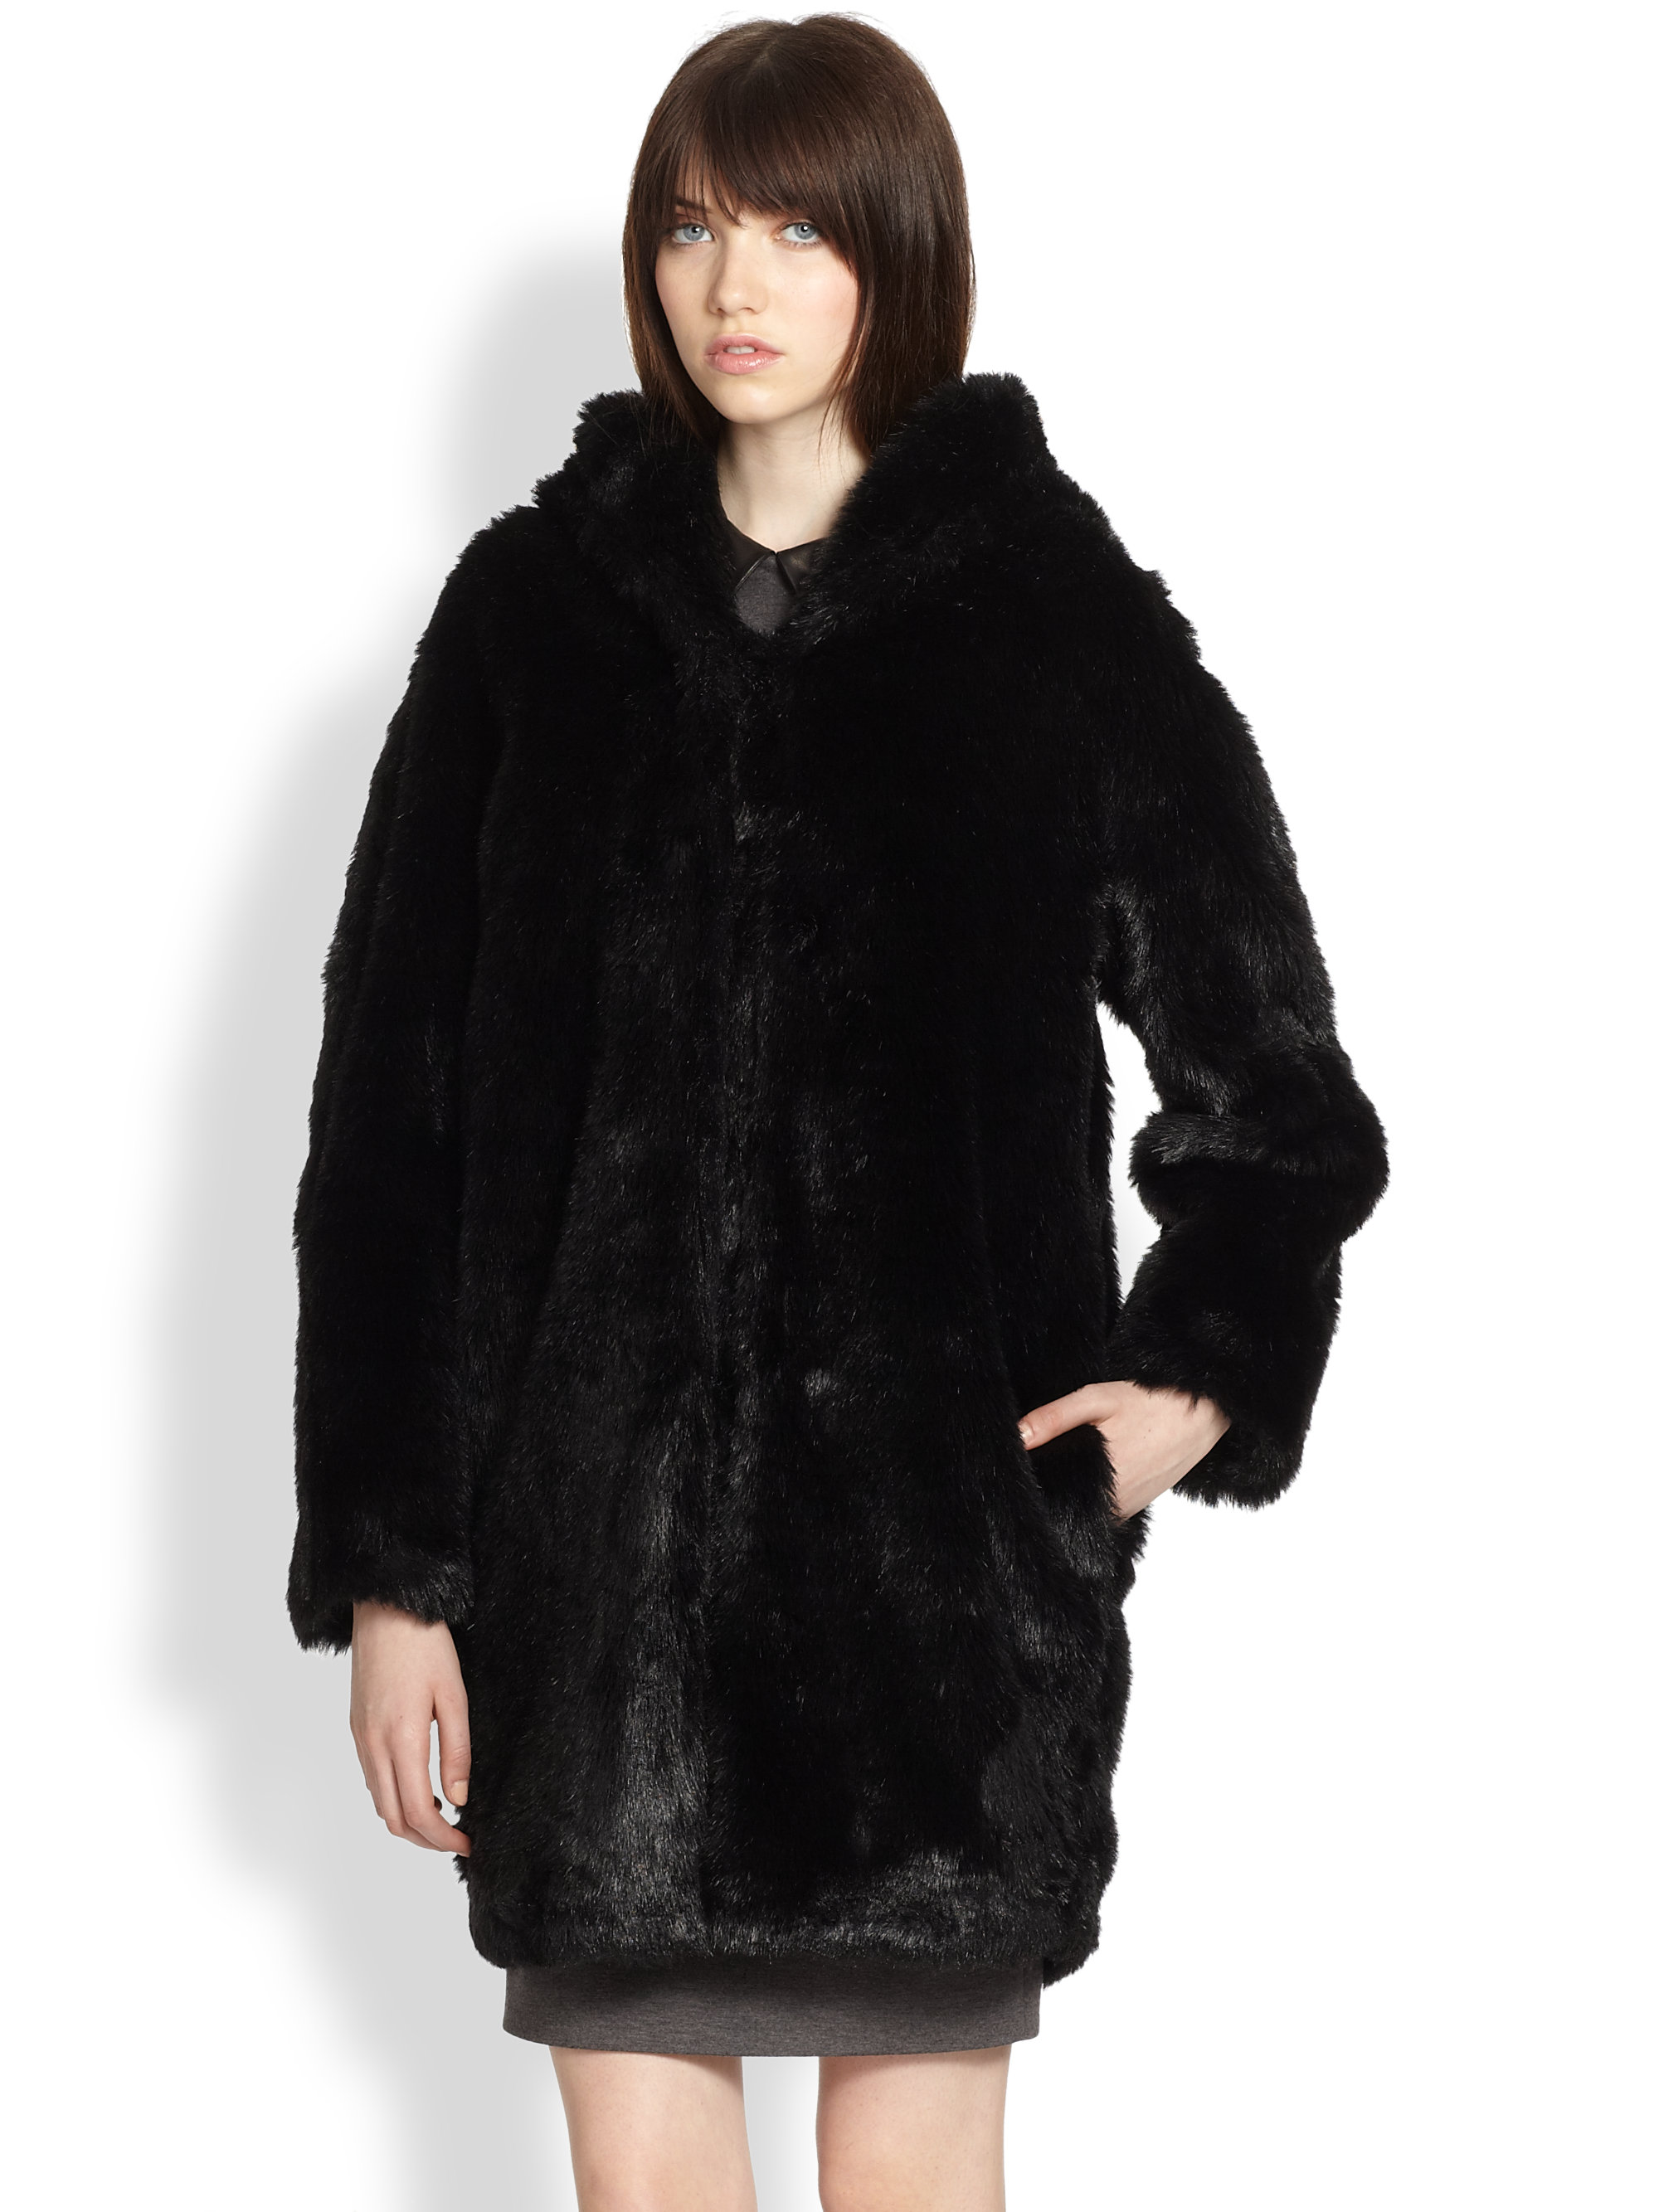 Thakoon Addition Hooded Faux Fur Coat in Black